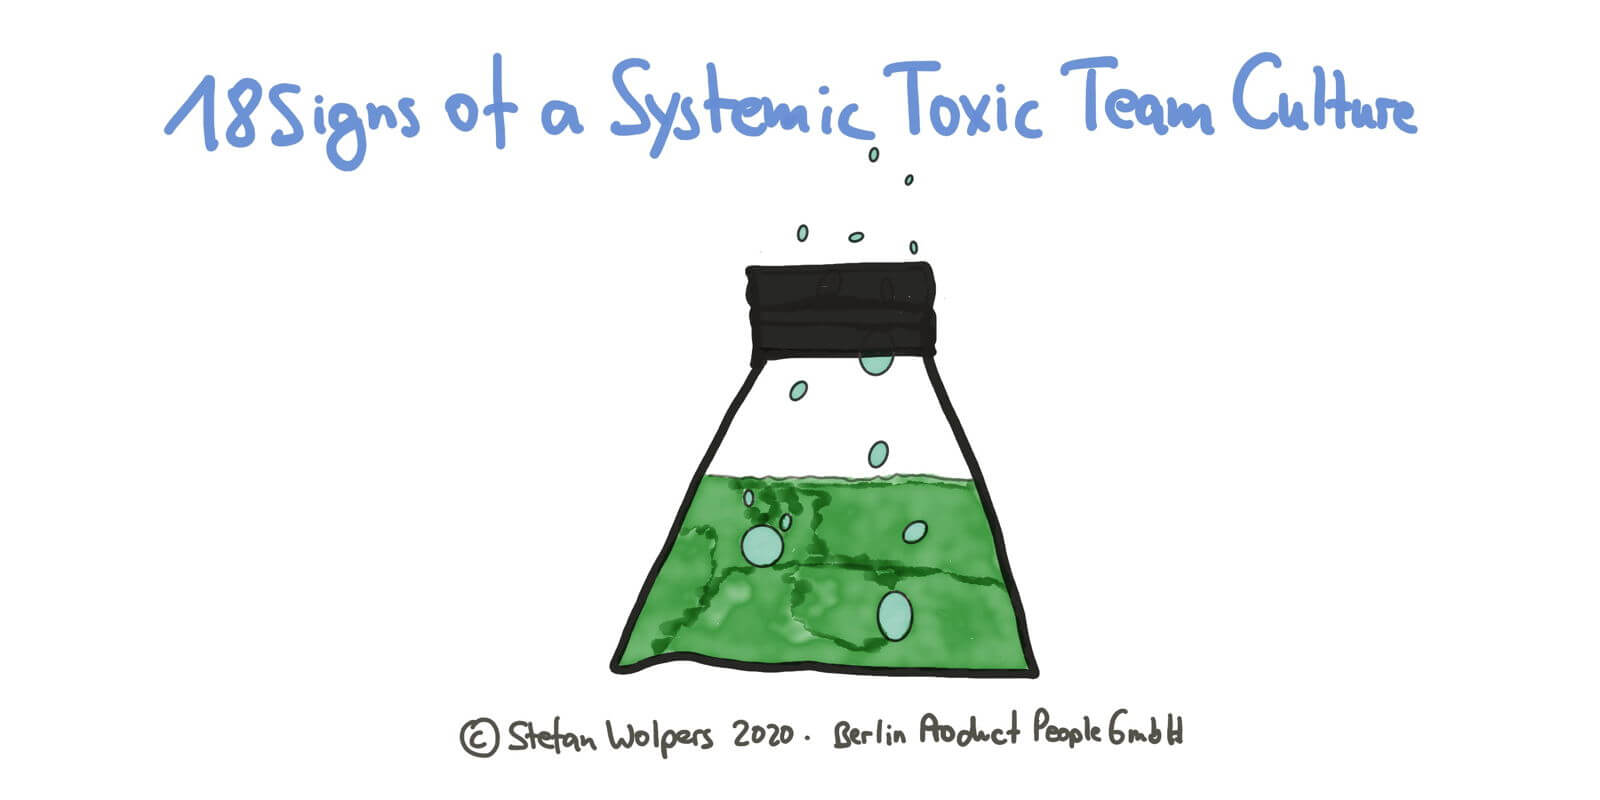 18 Signs of a Systemic Toxic Team Culture